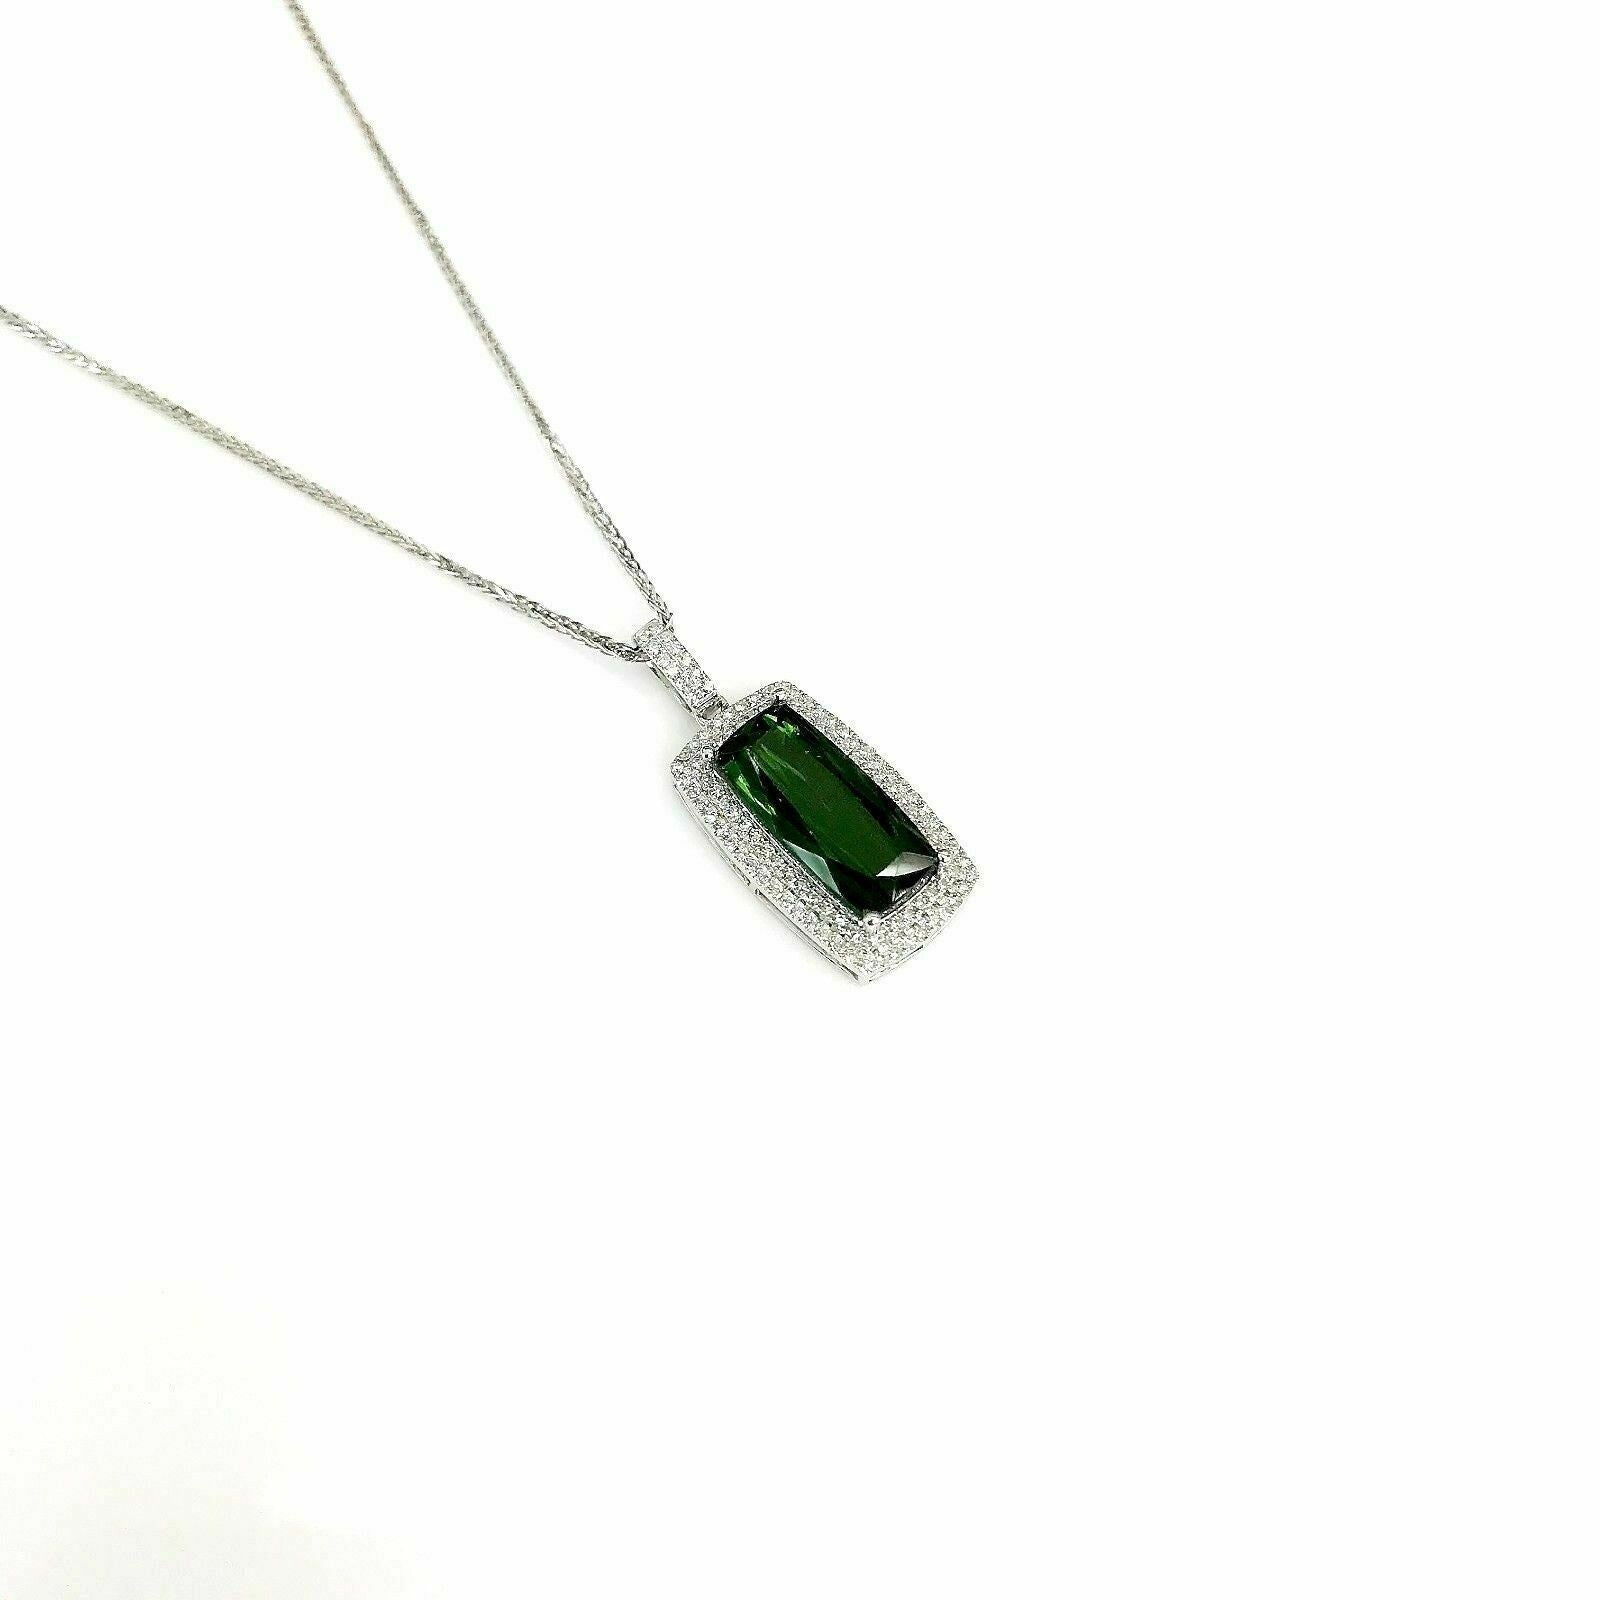 4.04 Carats t.w. Green Tourmaline & Diamond Halo Pendant w 14K Gold Chain